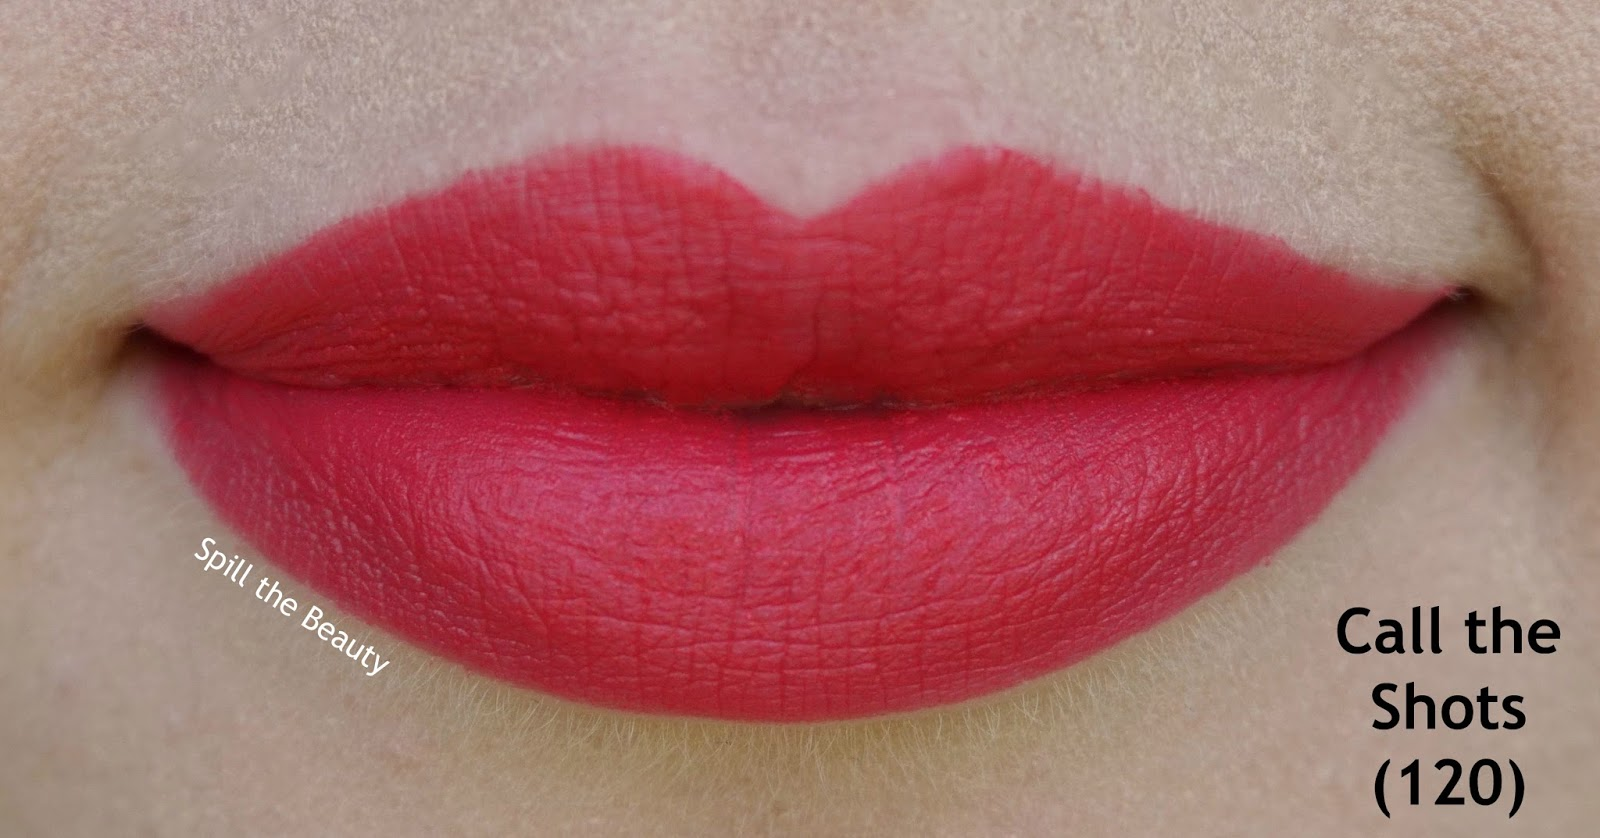 rimmel the only 1 matte lipstick review swatches 120 - call the shots